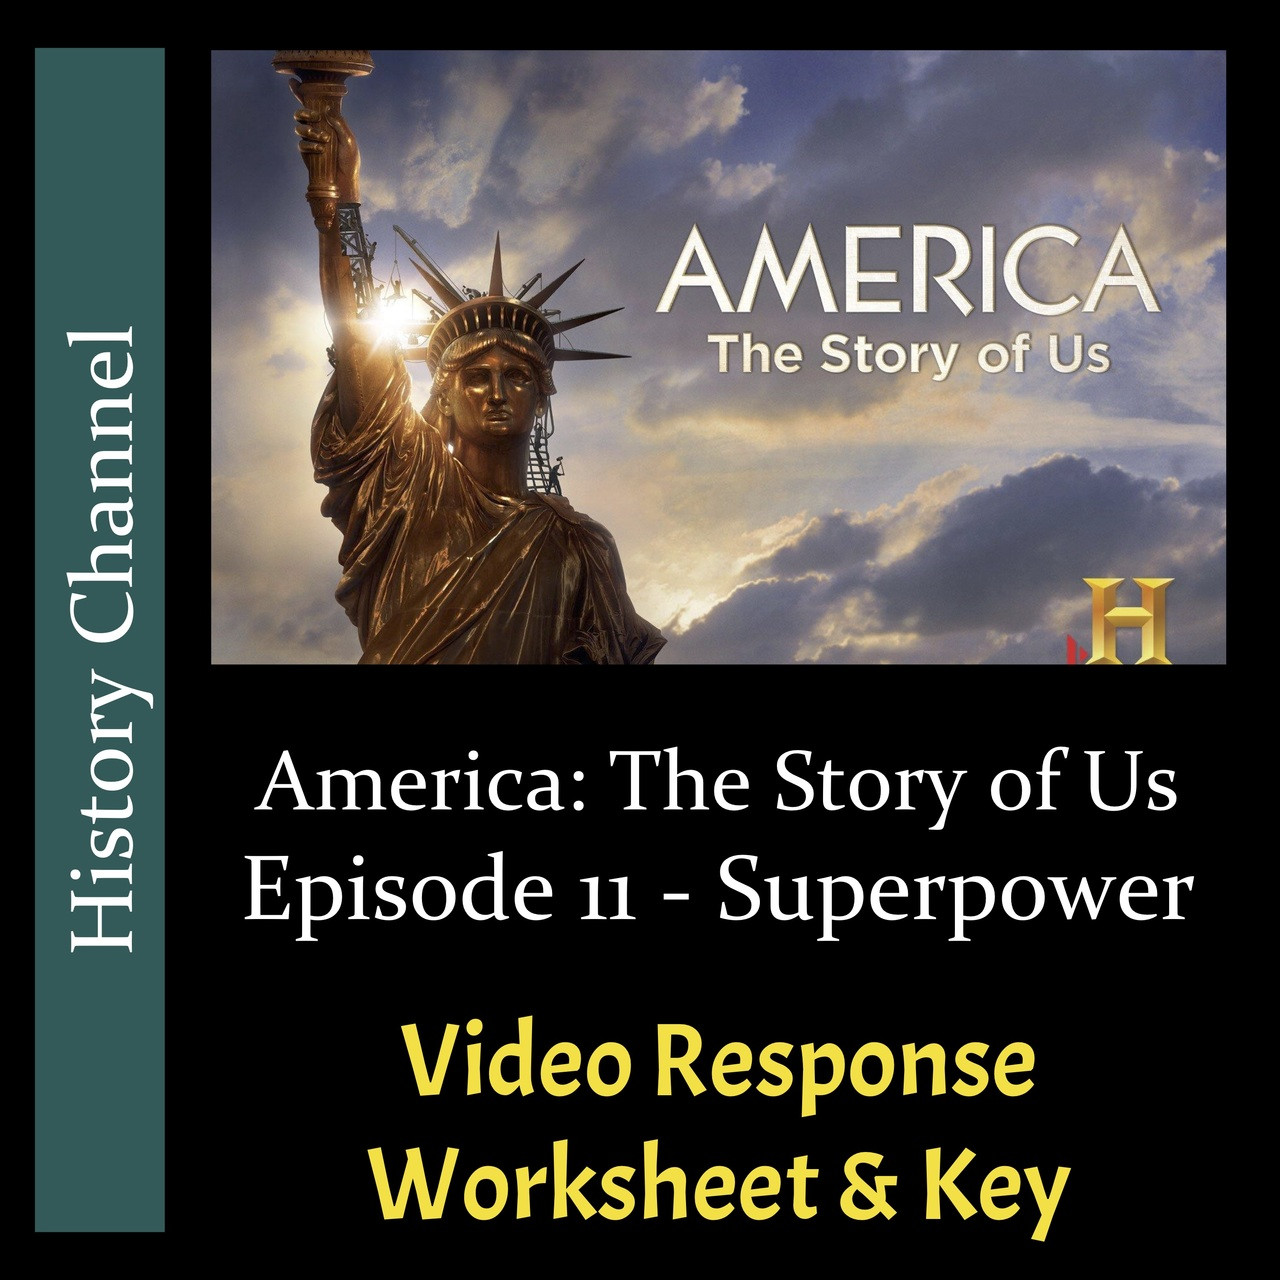 America The Story Of Us Episode 11 Superpower Video Response